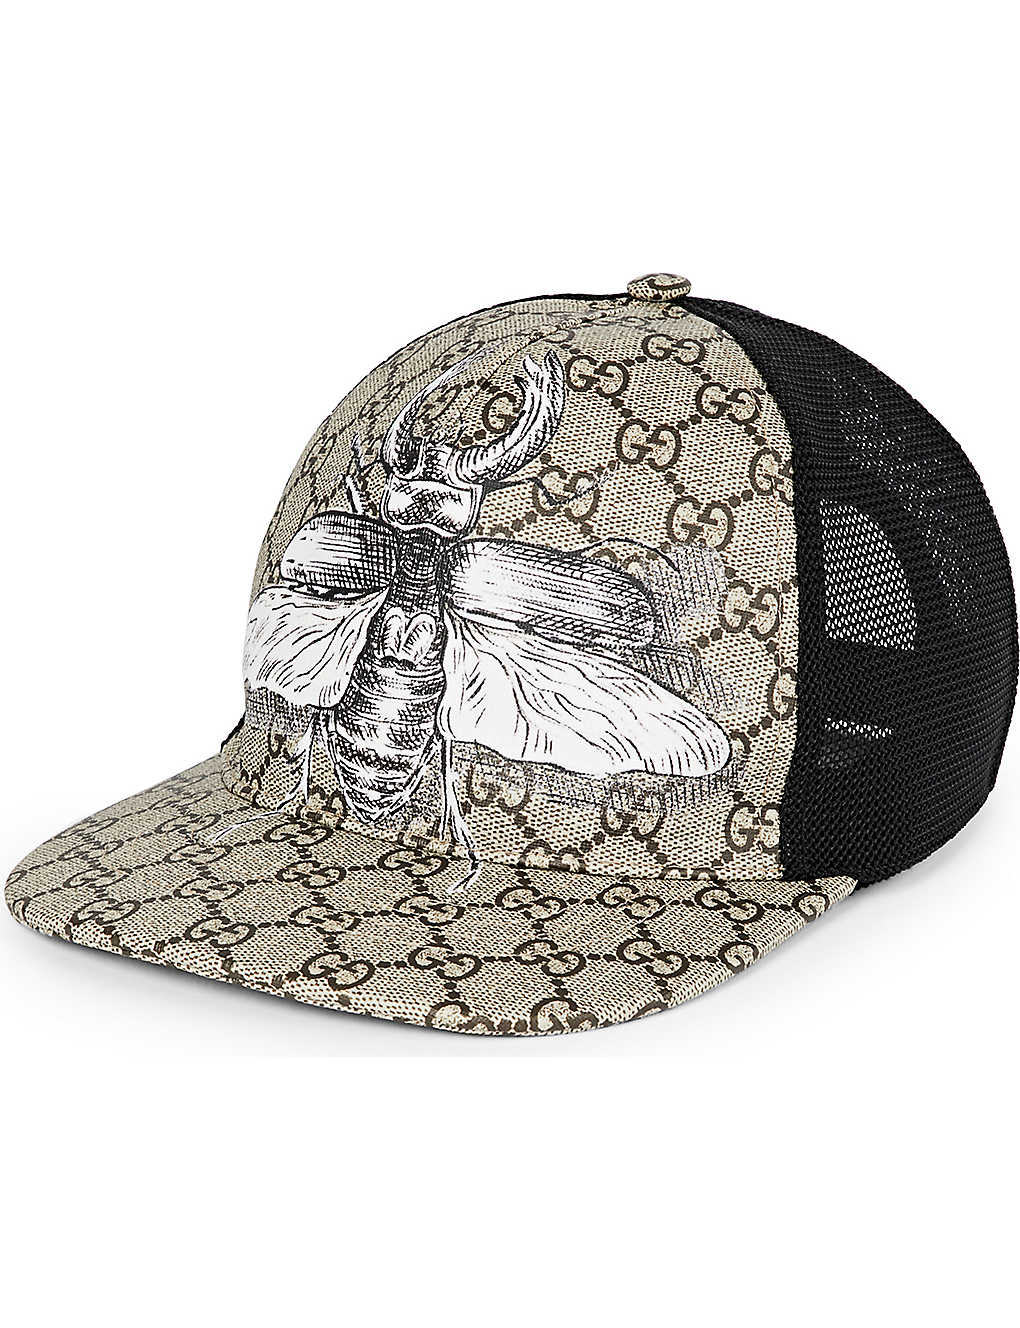 2fee1faaaa4 GUCCI - Insect canvas baseball cap